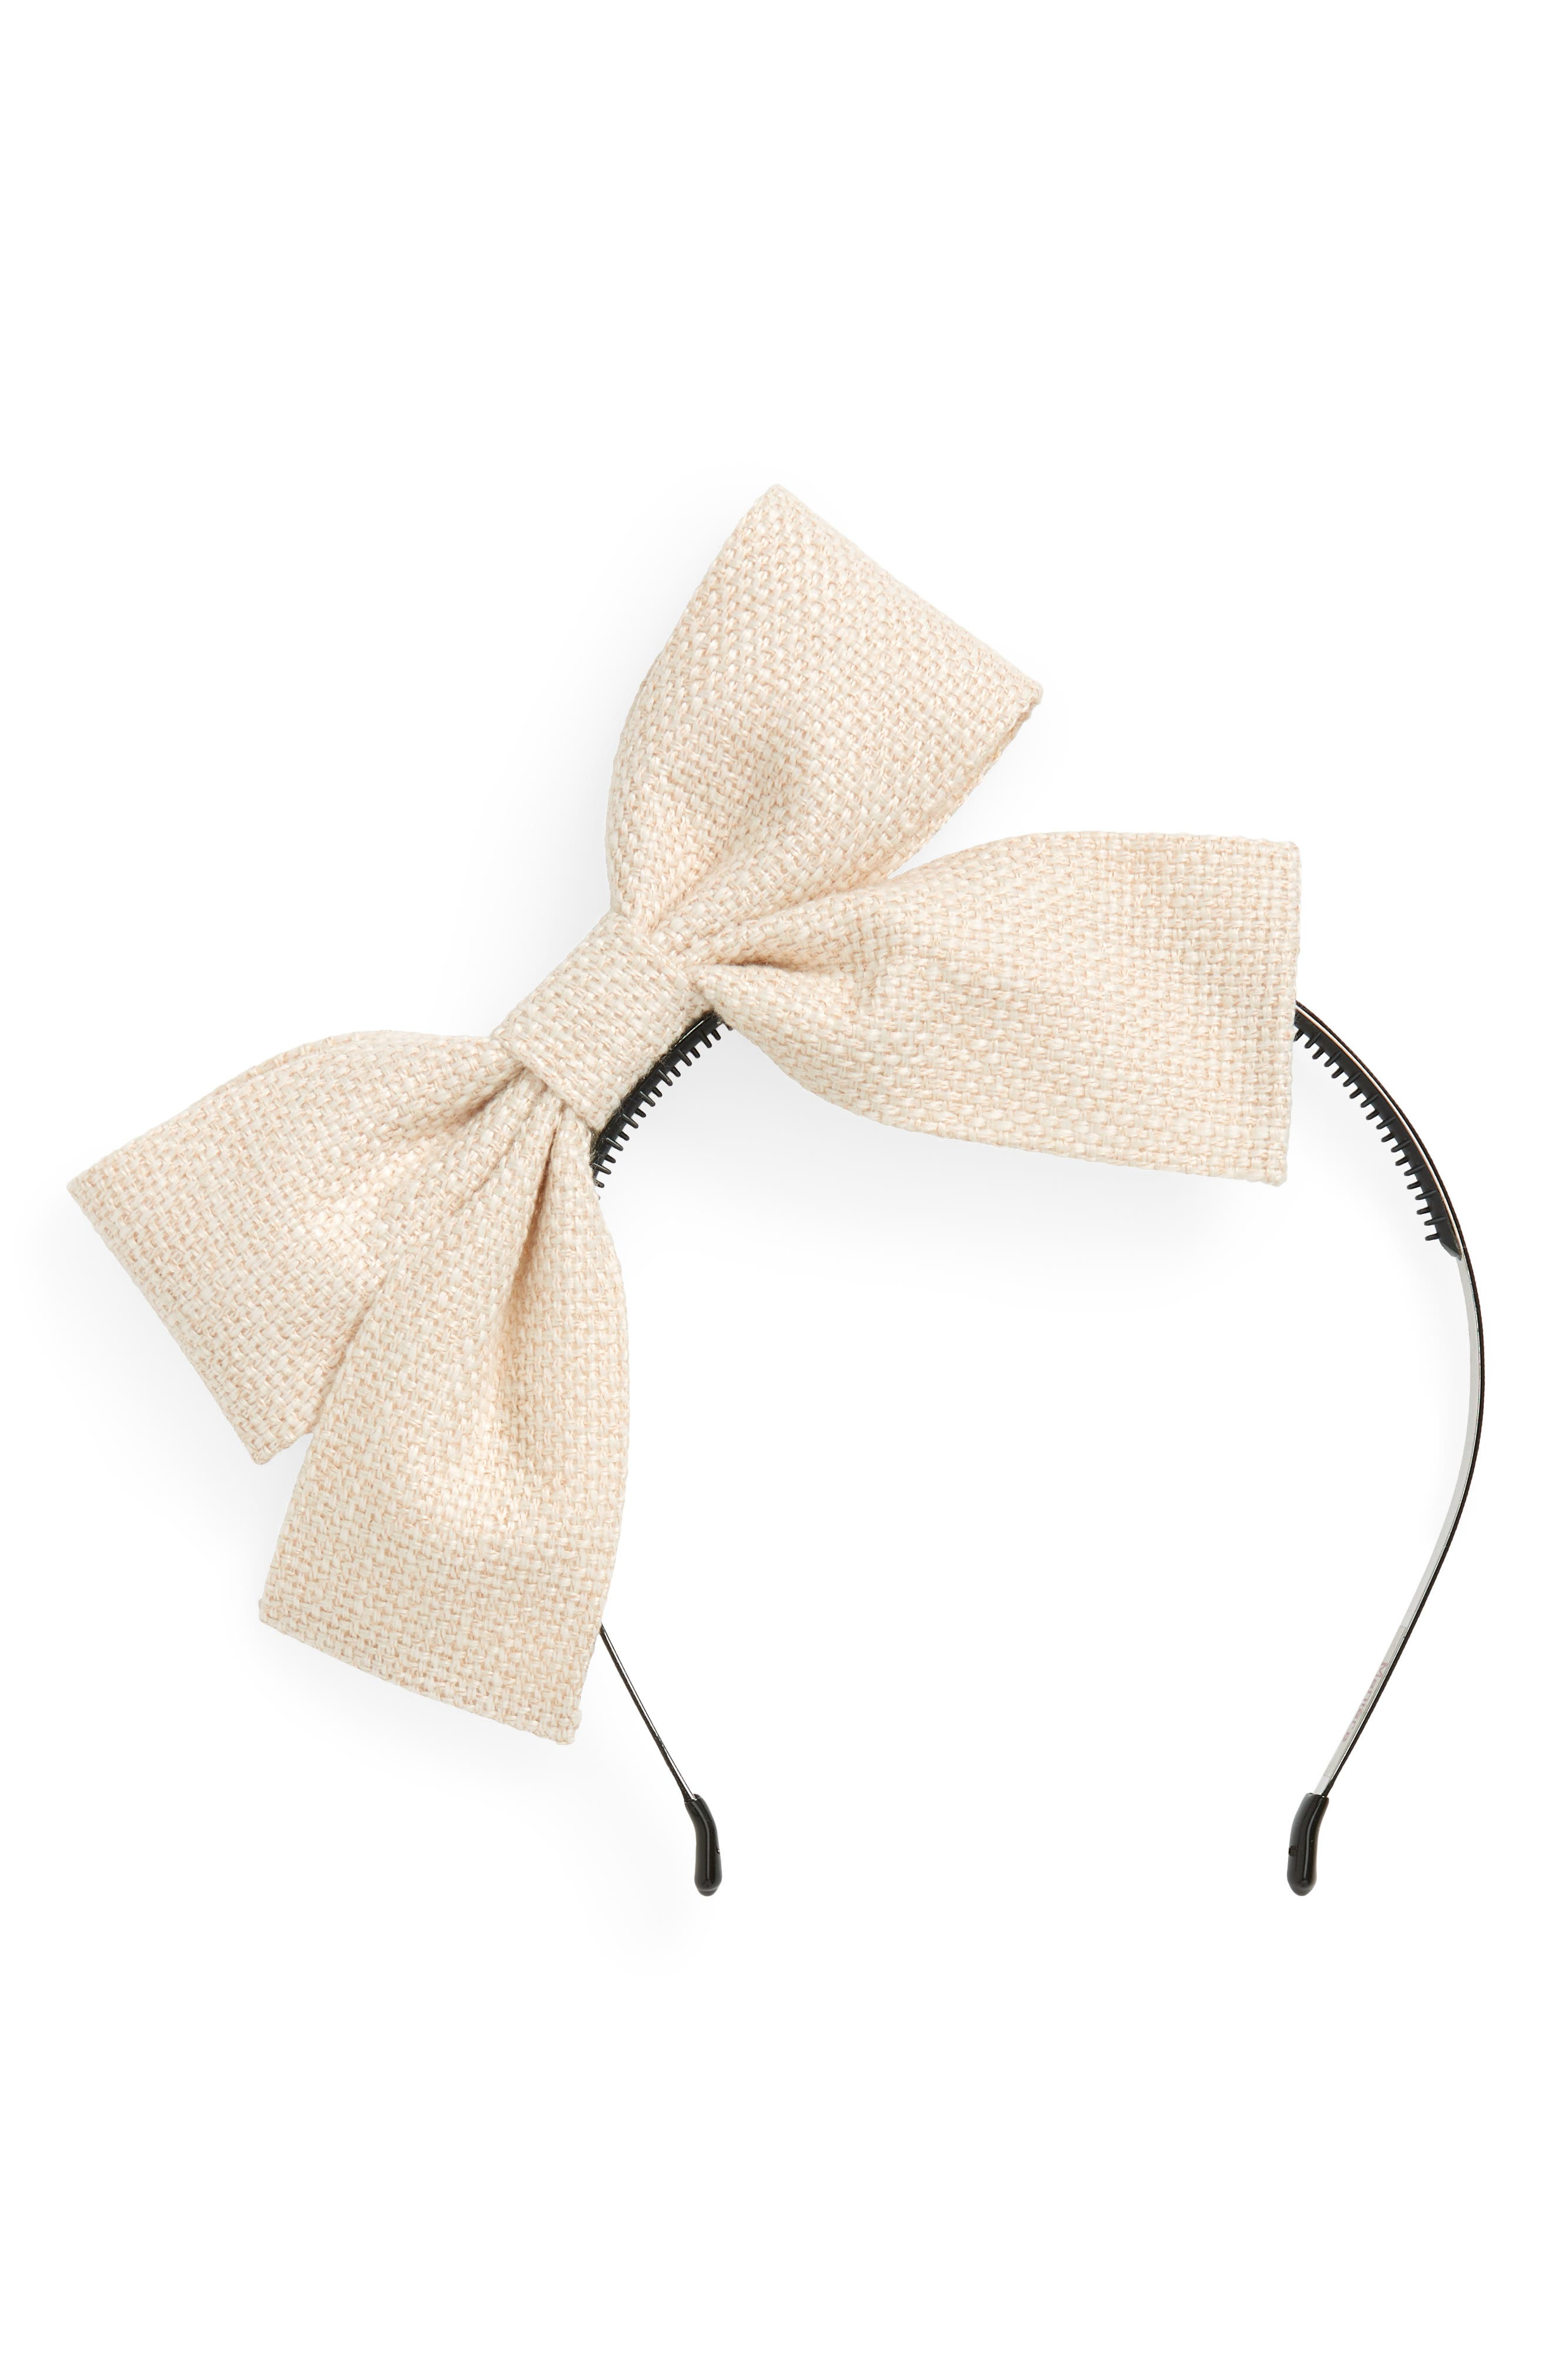 Burlap Bow Headband,                             Main thumbnail 1, color,                             900